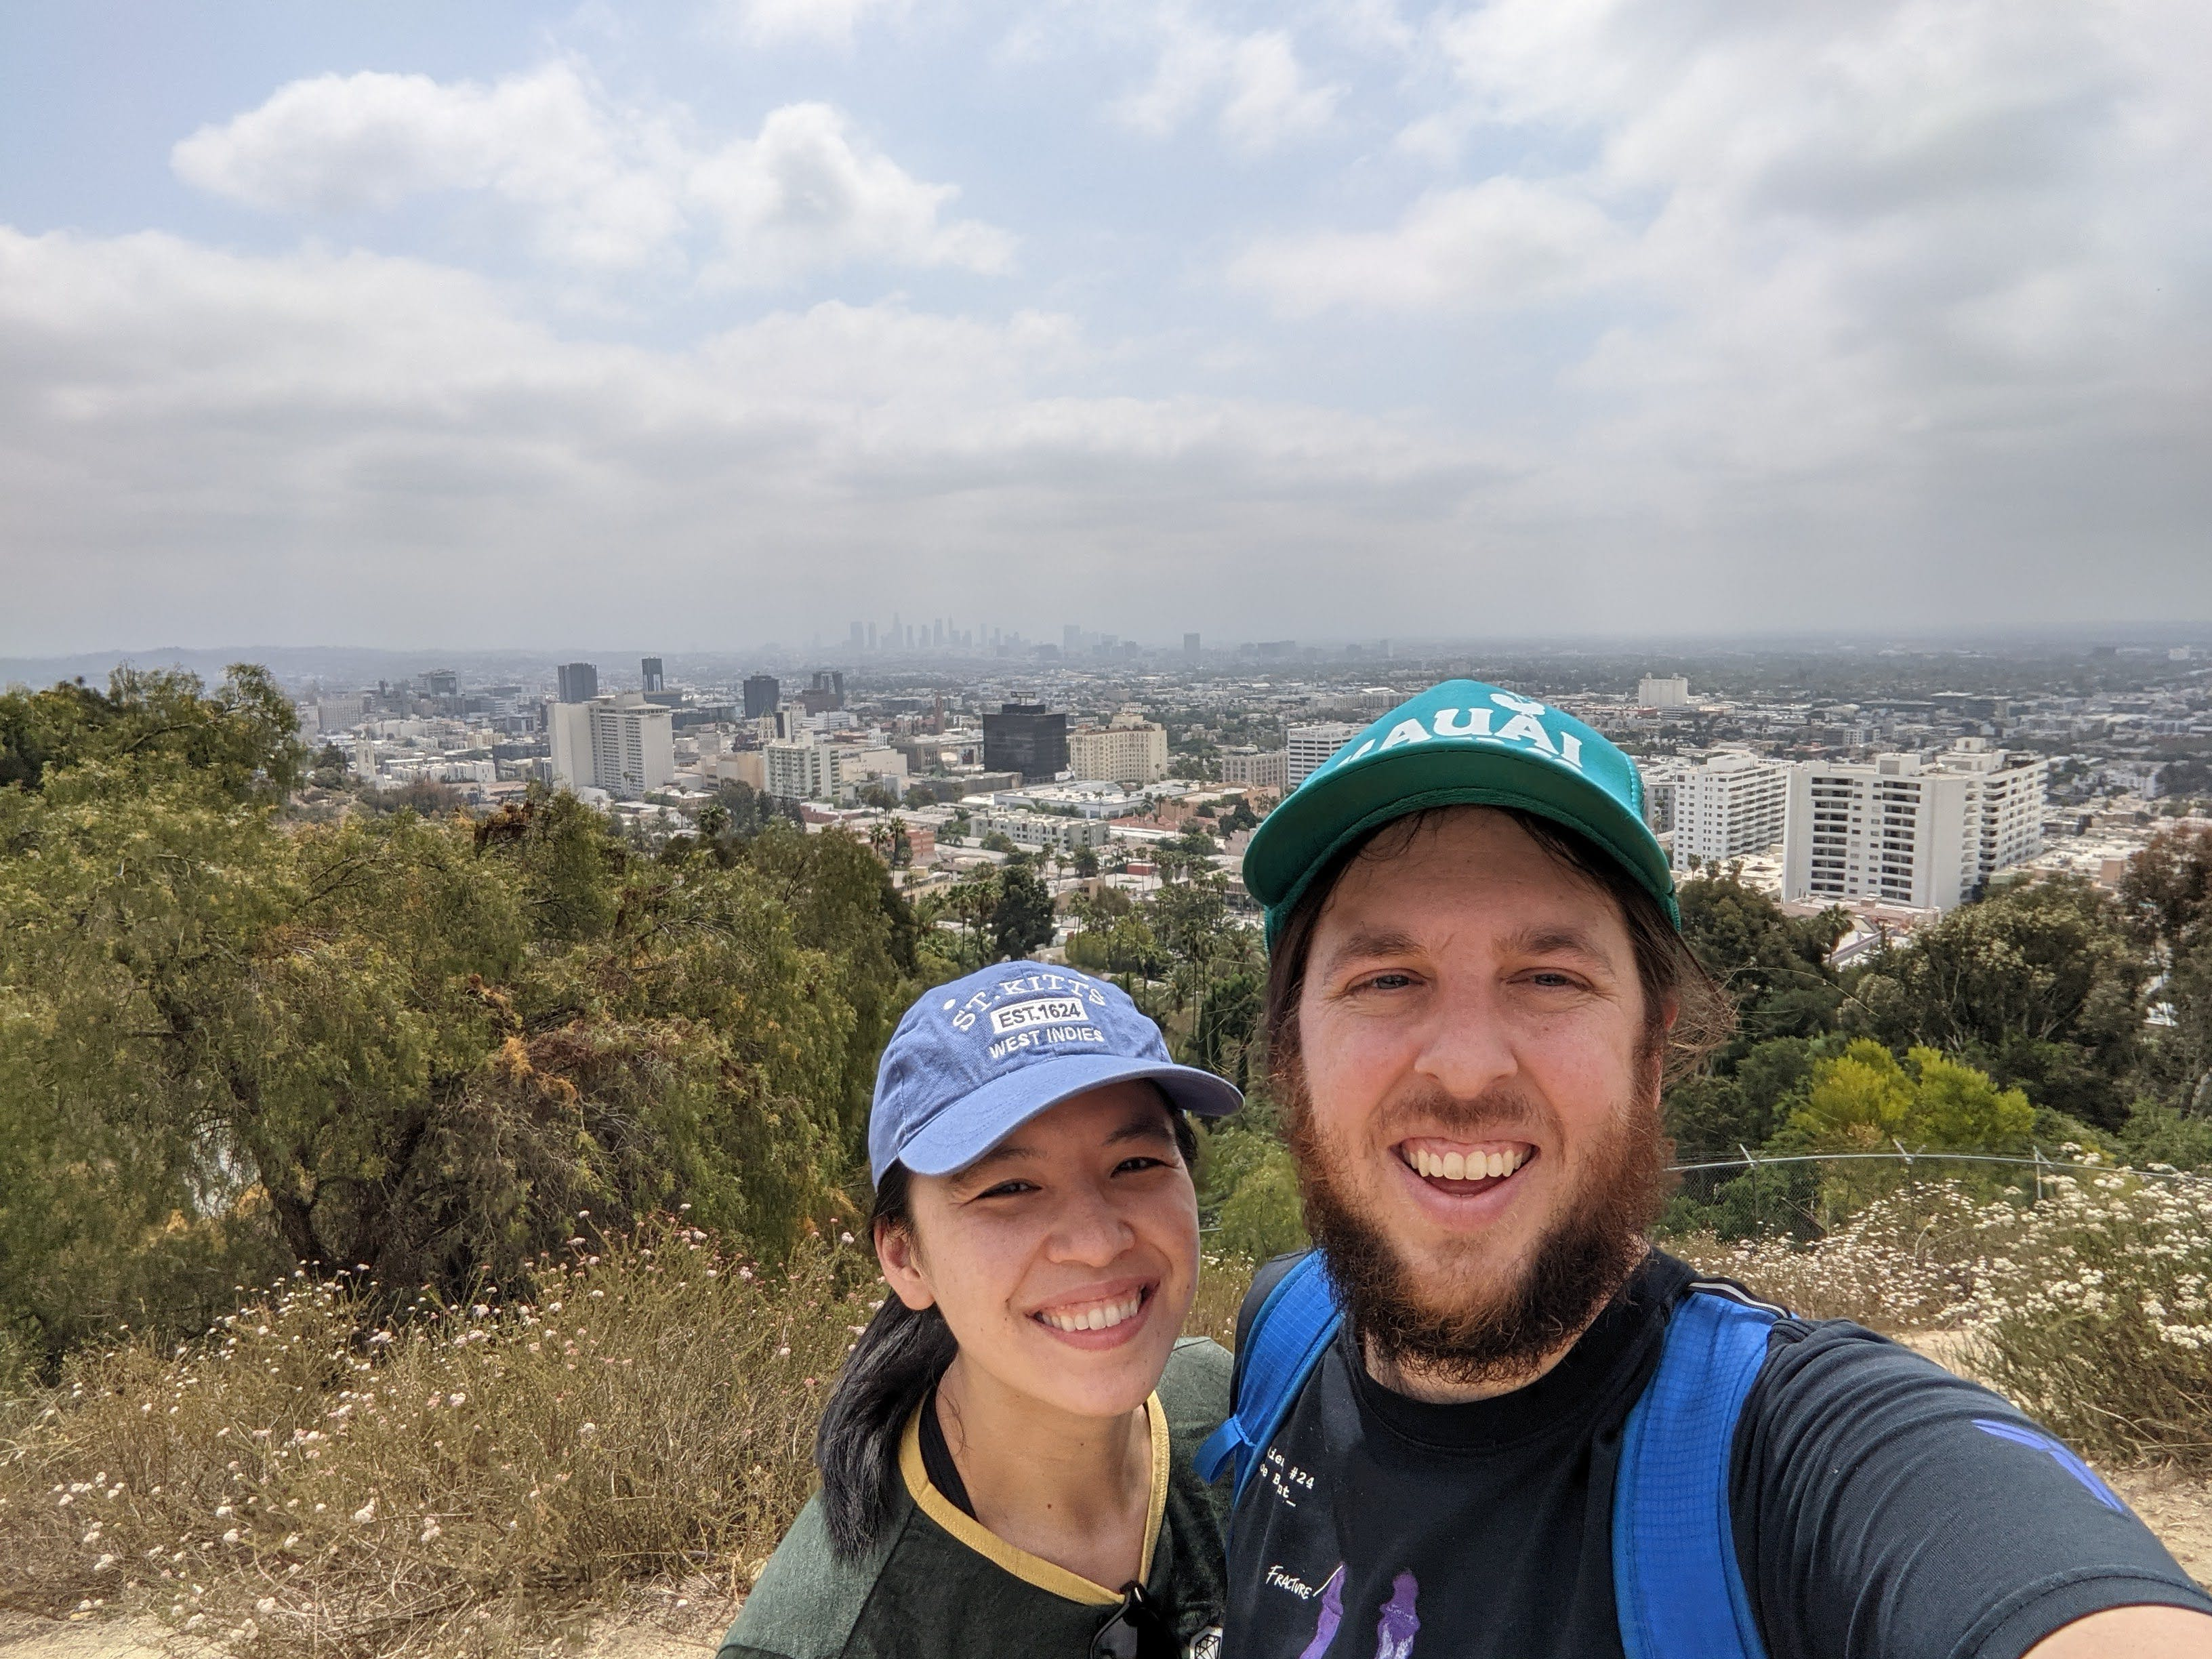 Selfie of couple on a hike at a Runyon Canyon overlook in Los Angeles overlooking the city